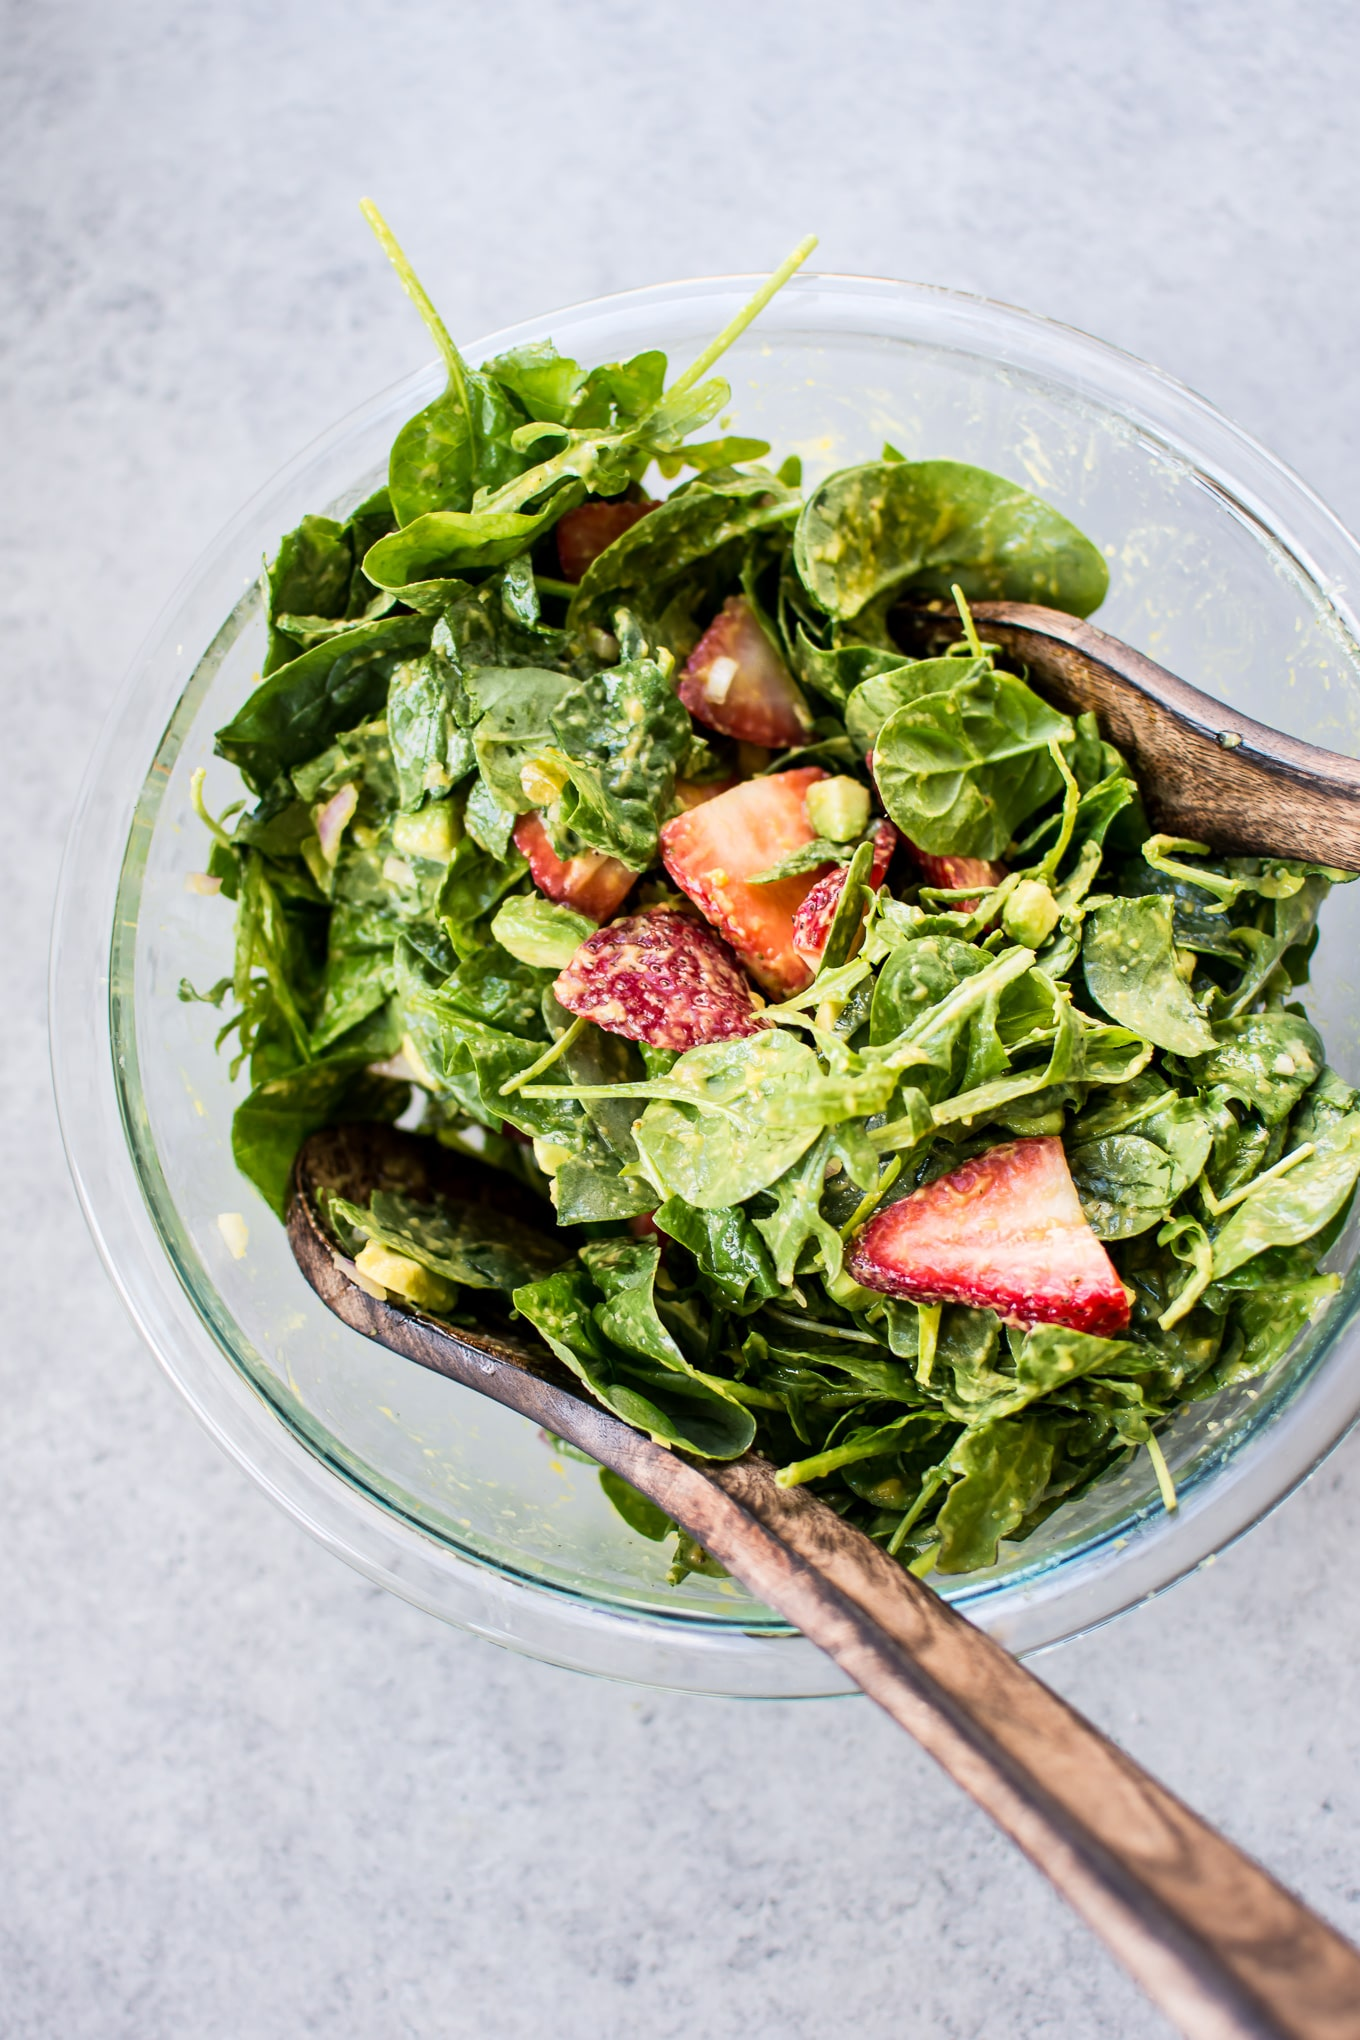 This strawberry spinach salad with mango dressing is a fresh and fruity salad that will be on repeat all summer long! Creamy avocado, peppery arugula, and red onions add a wonderful contrast to the sweet strawberries.